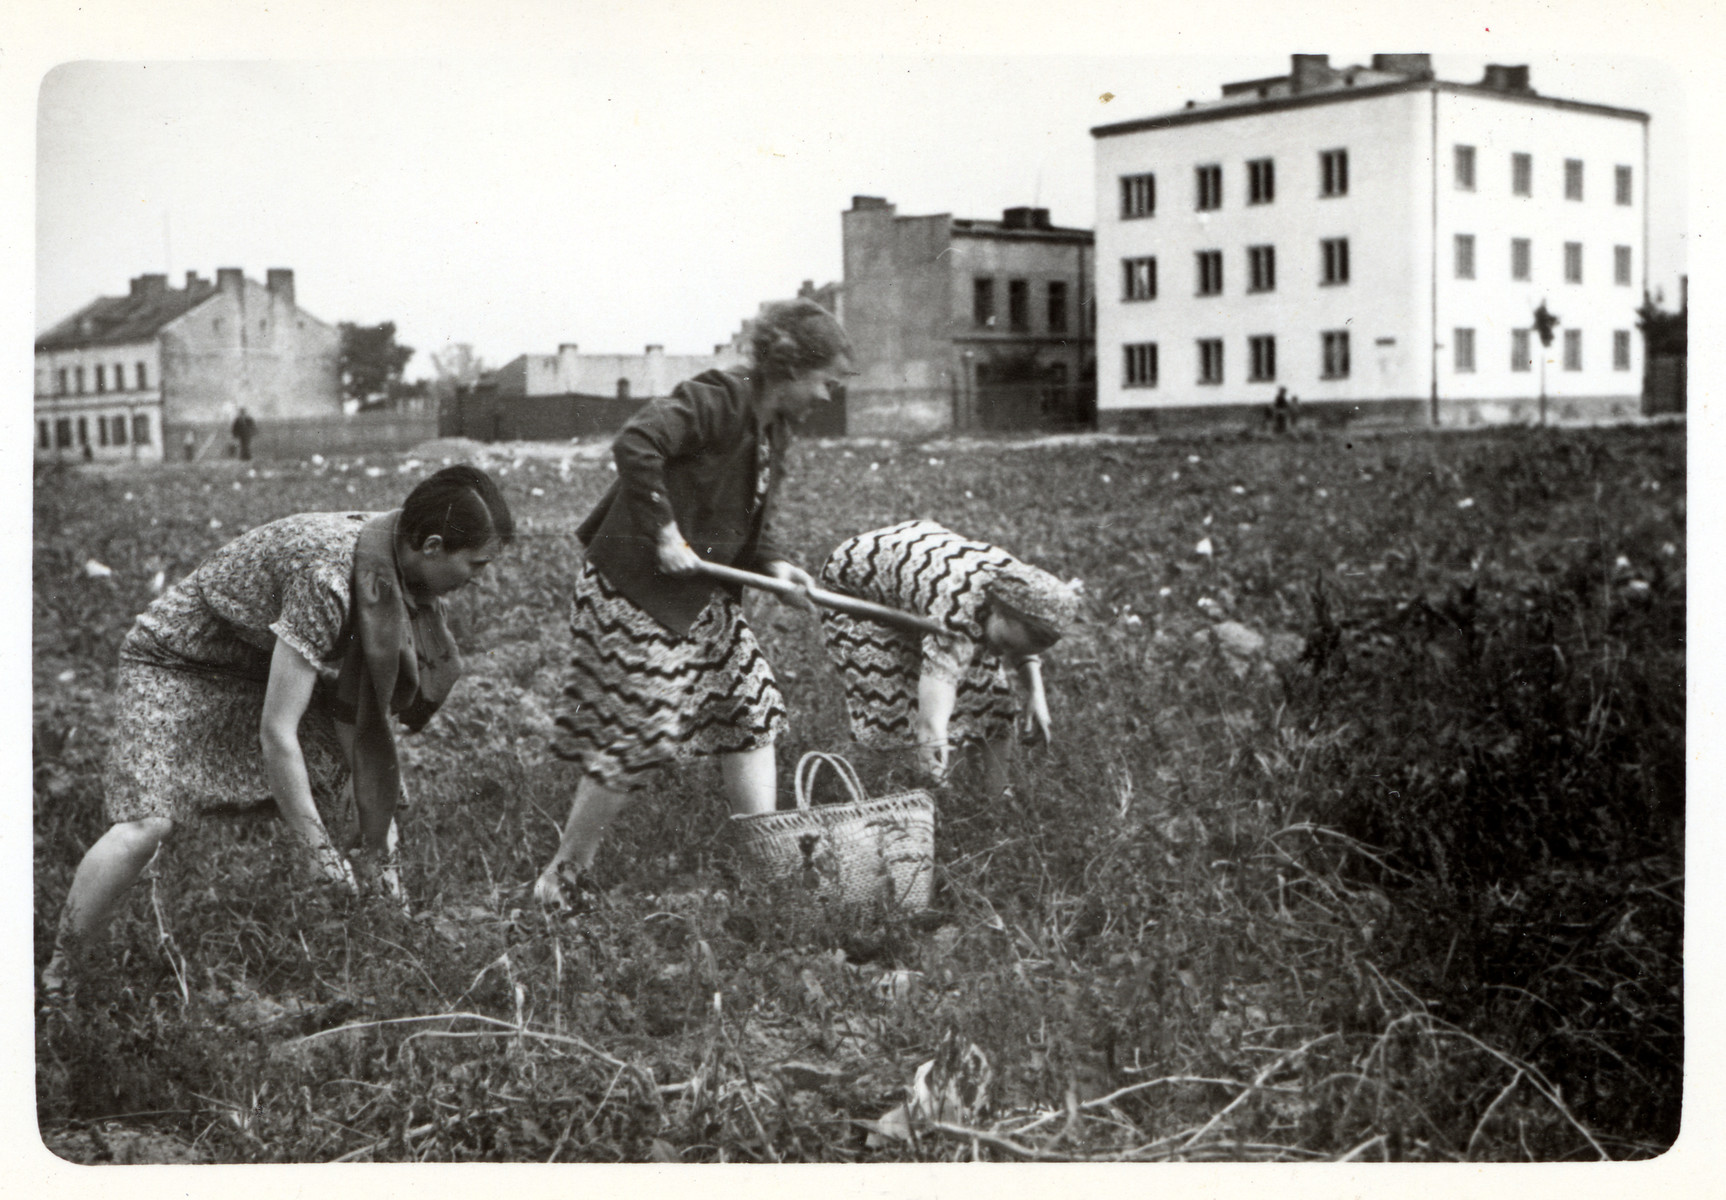 Polish women forage for potatoes in the besieged city of Warsaw.